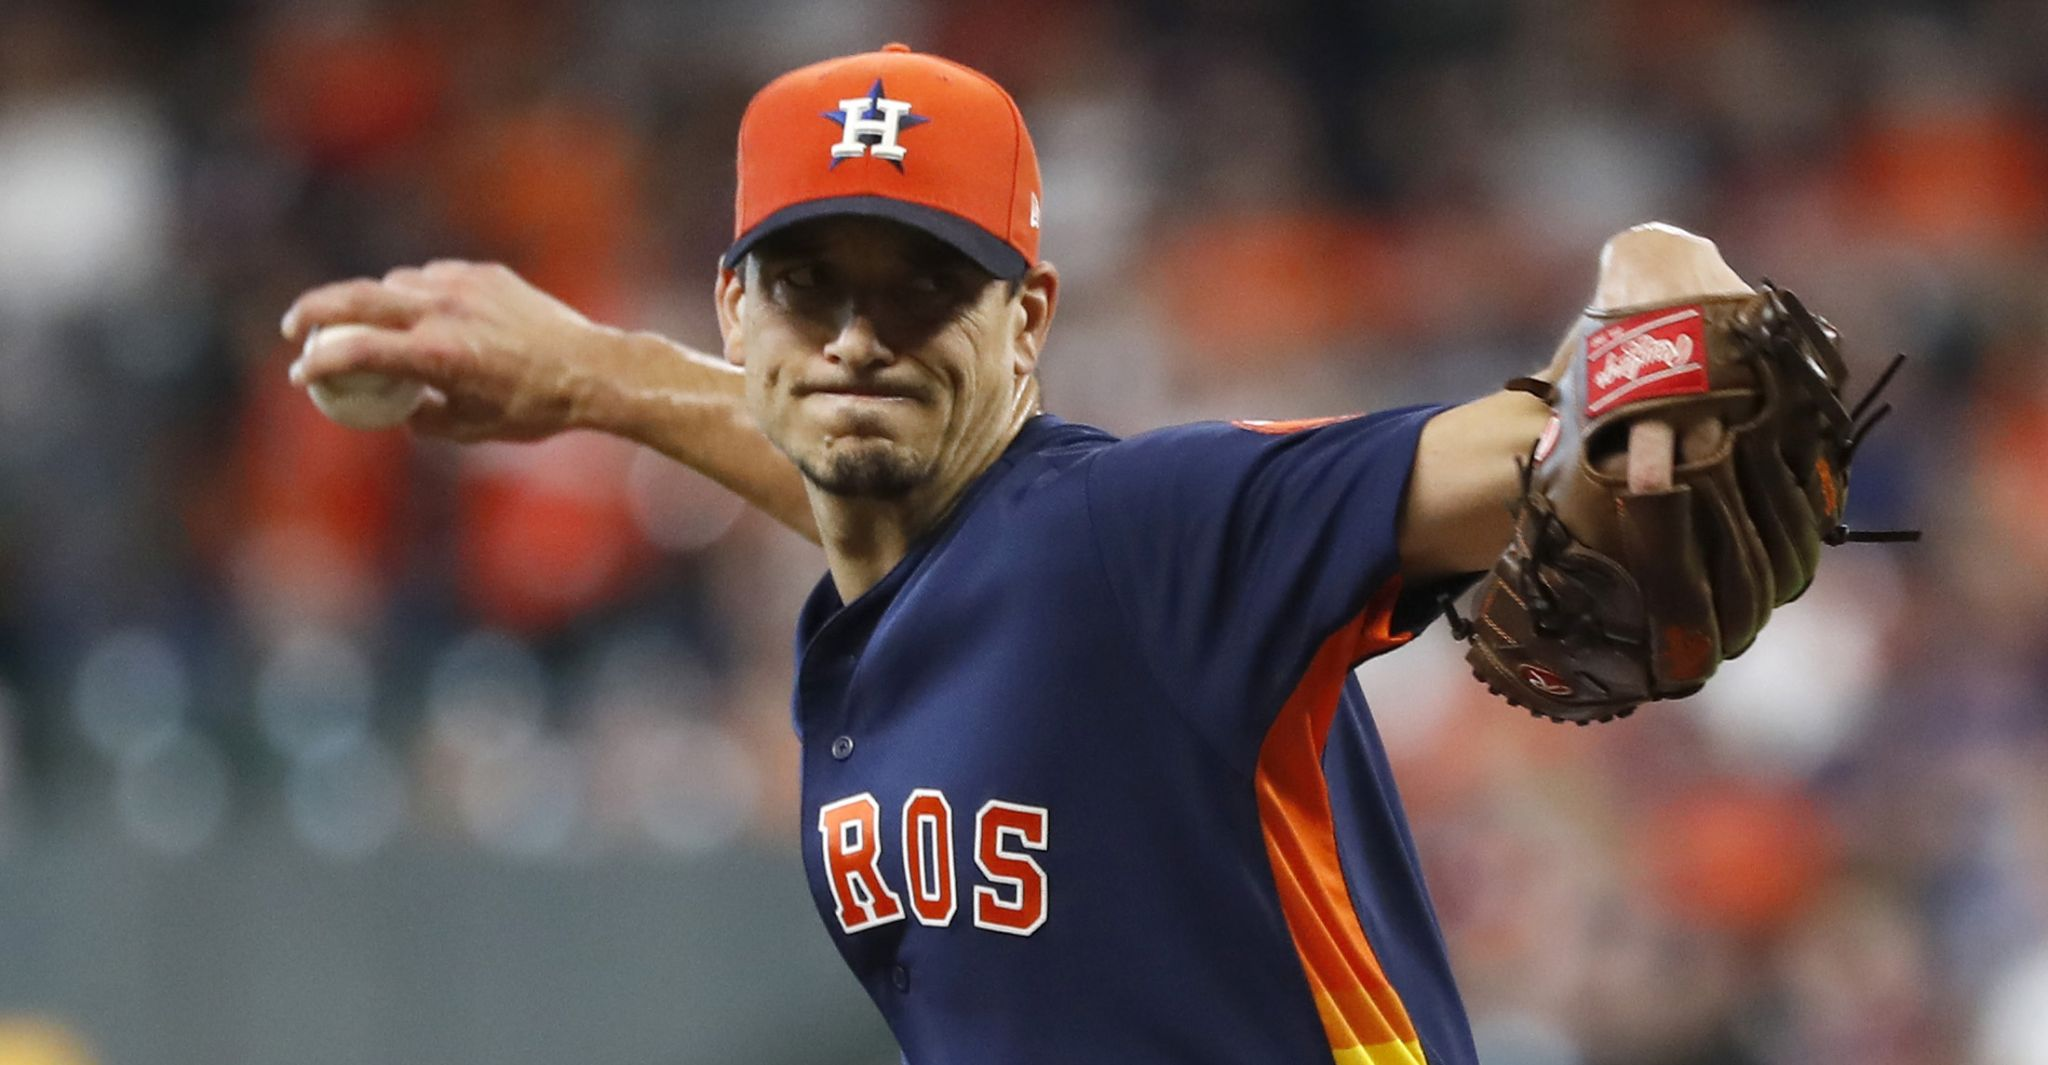 charlie morton - photo #33